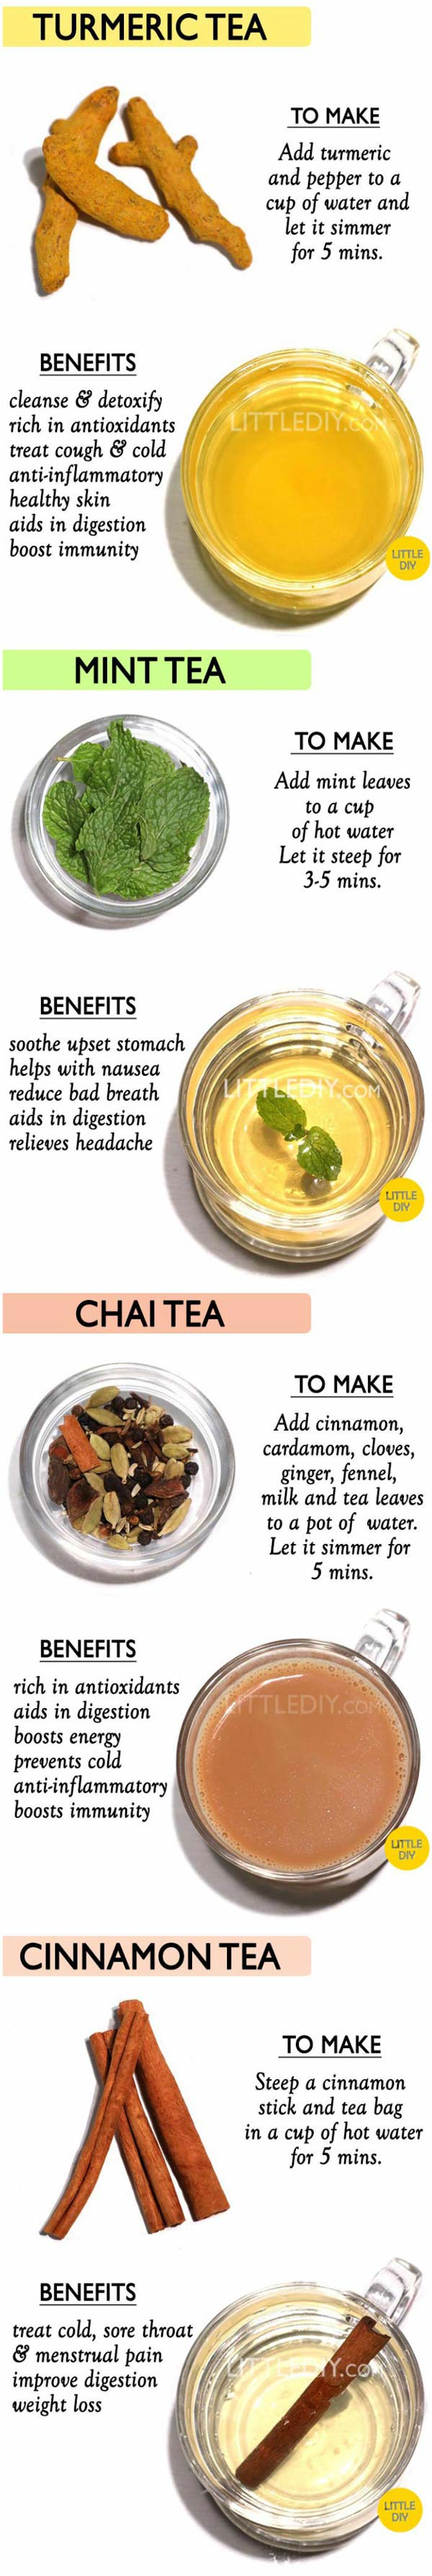 Top 10 types of teas with benefits